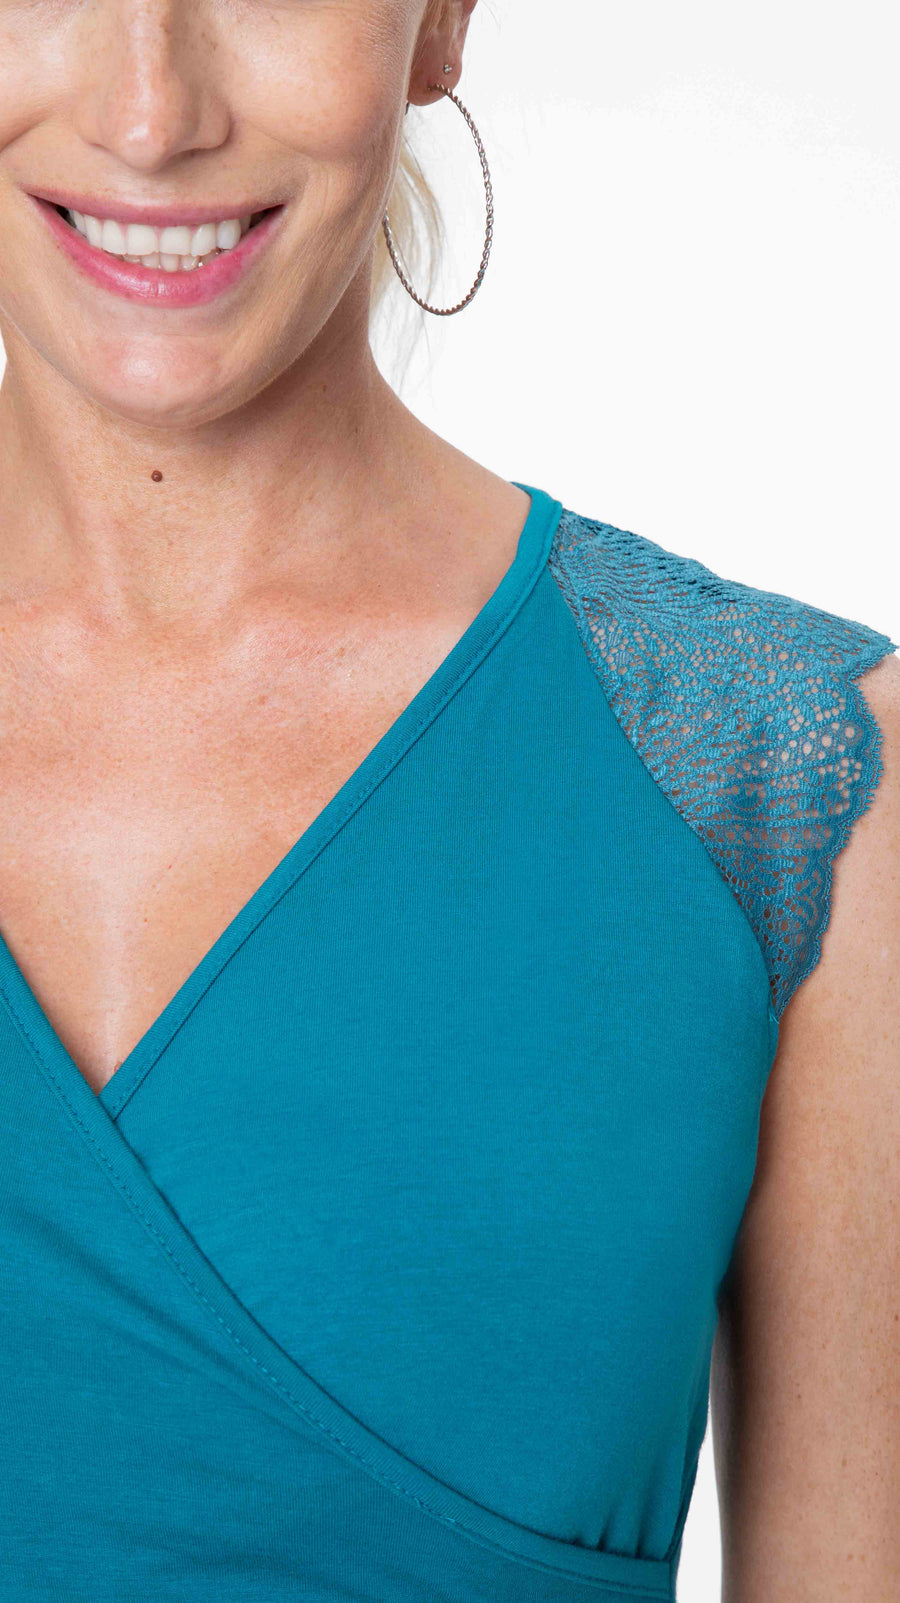 Stowaway Collection Chelsea Maternity & Nursing Top in Teal Front View